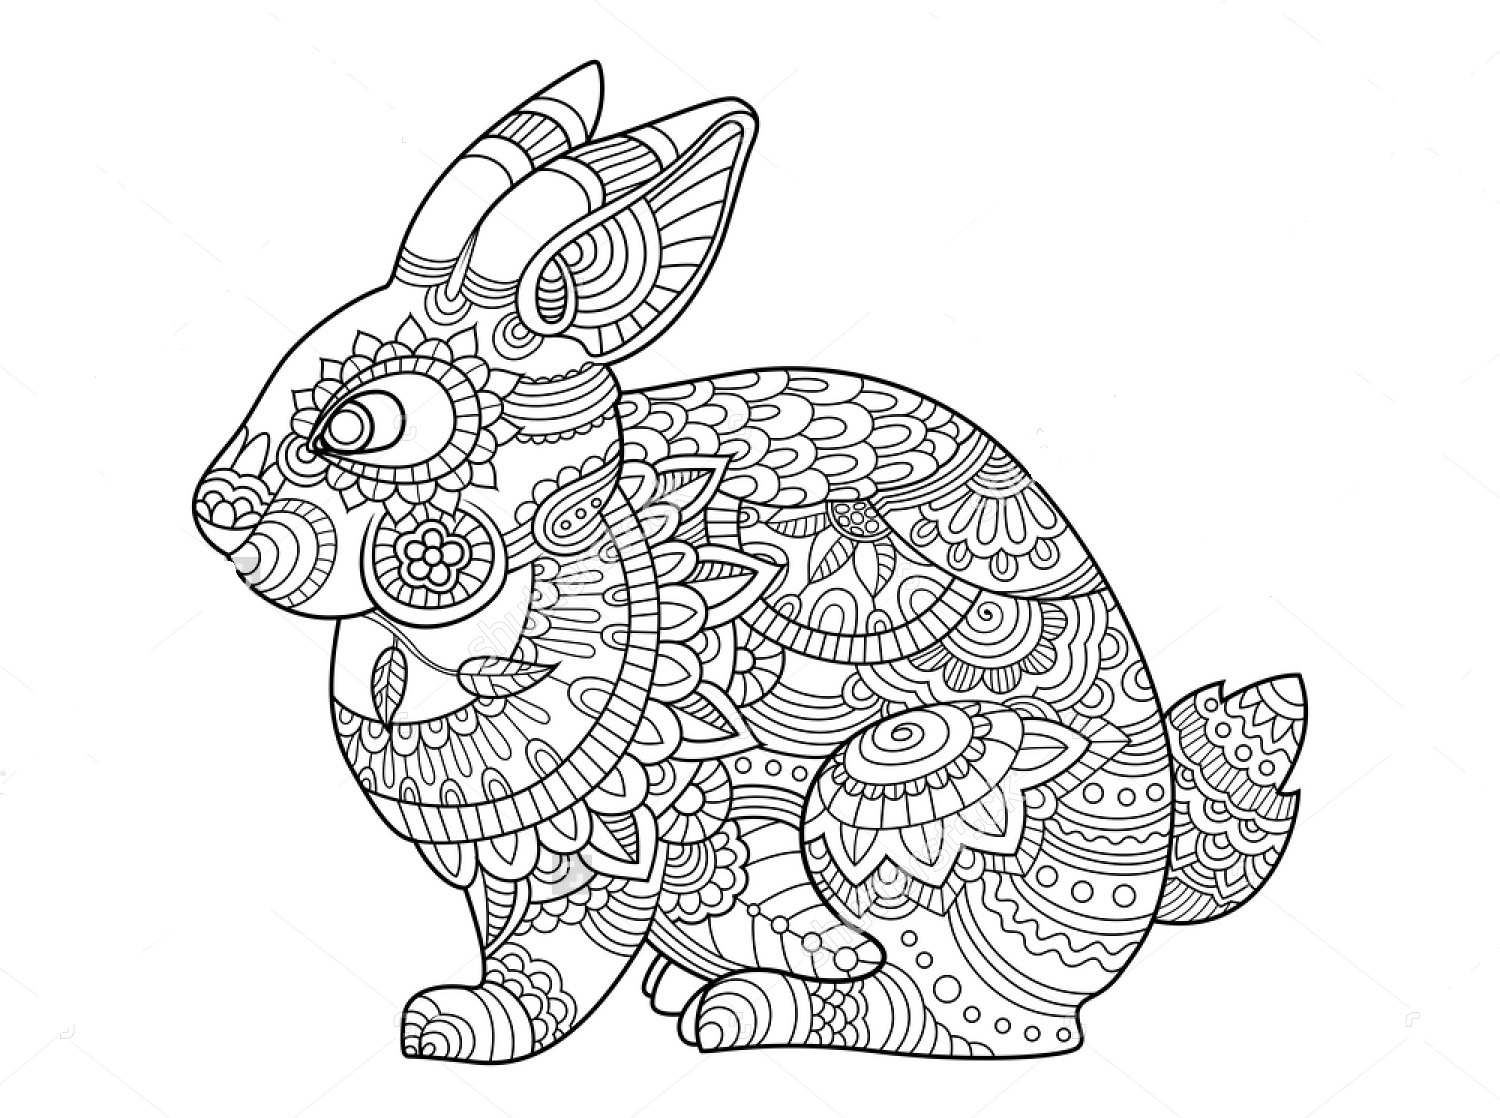 rabbit coloring page printable rabbit coloring pages for kids coloring rabbit page